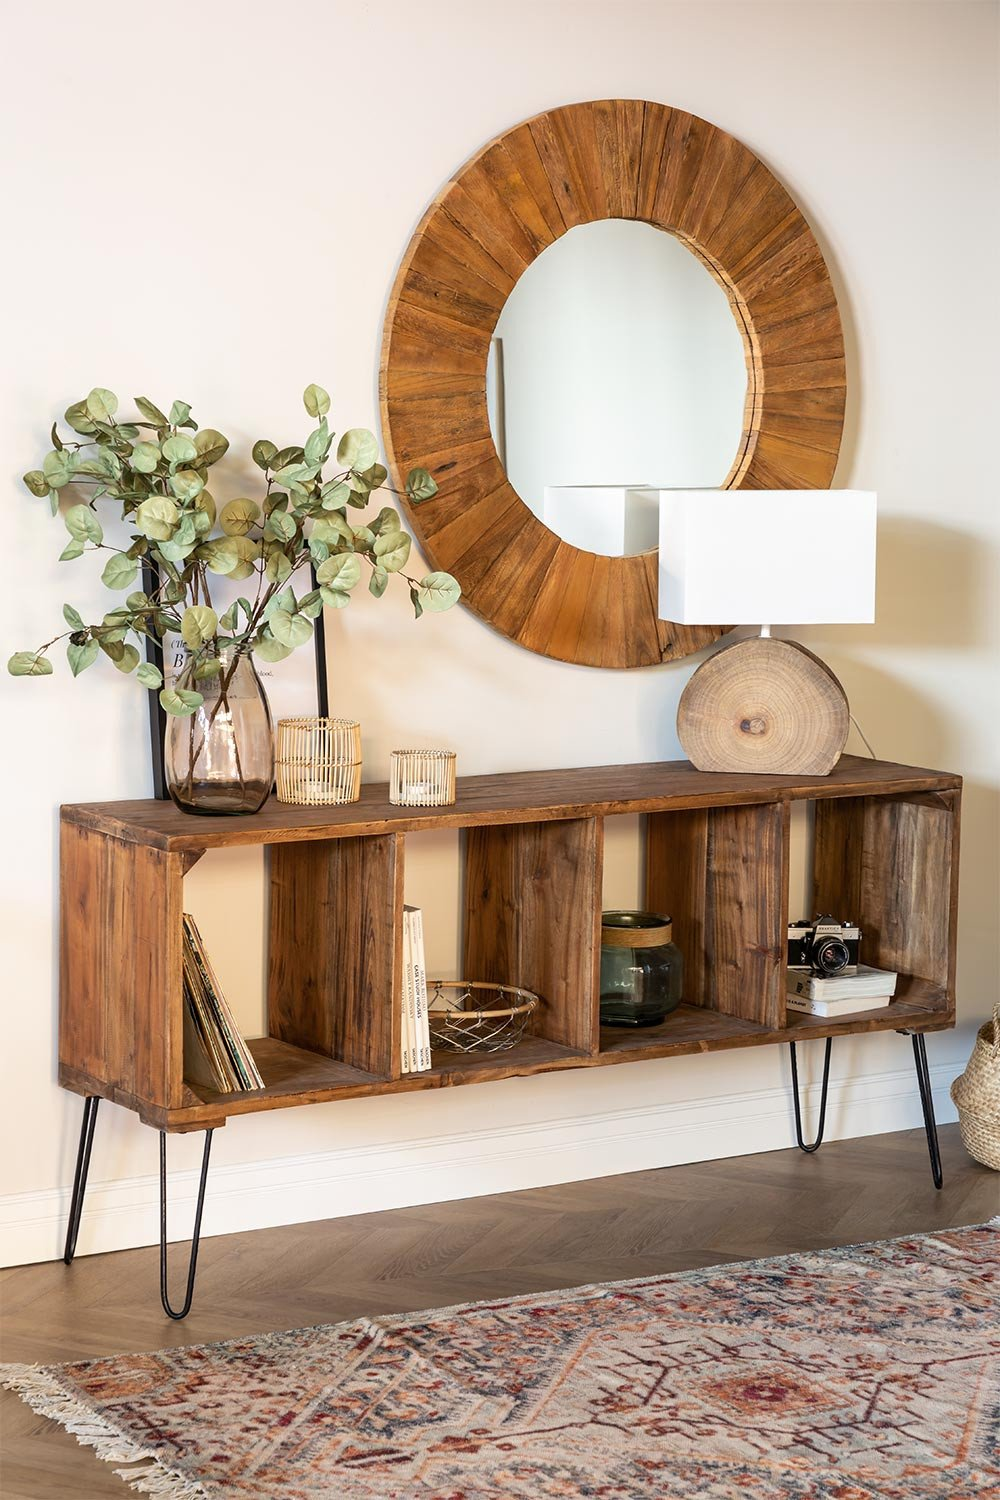 Recycled Wooden Sideboard Shelving Unit Ceila , gallery image 1